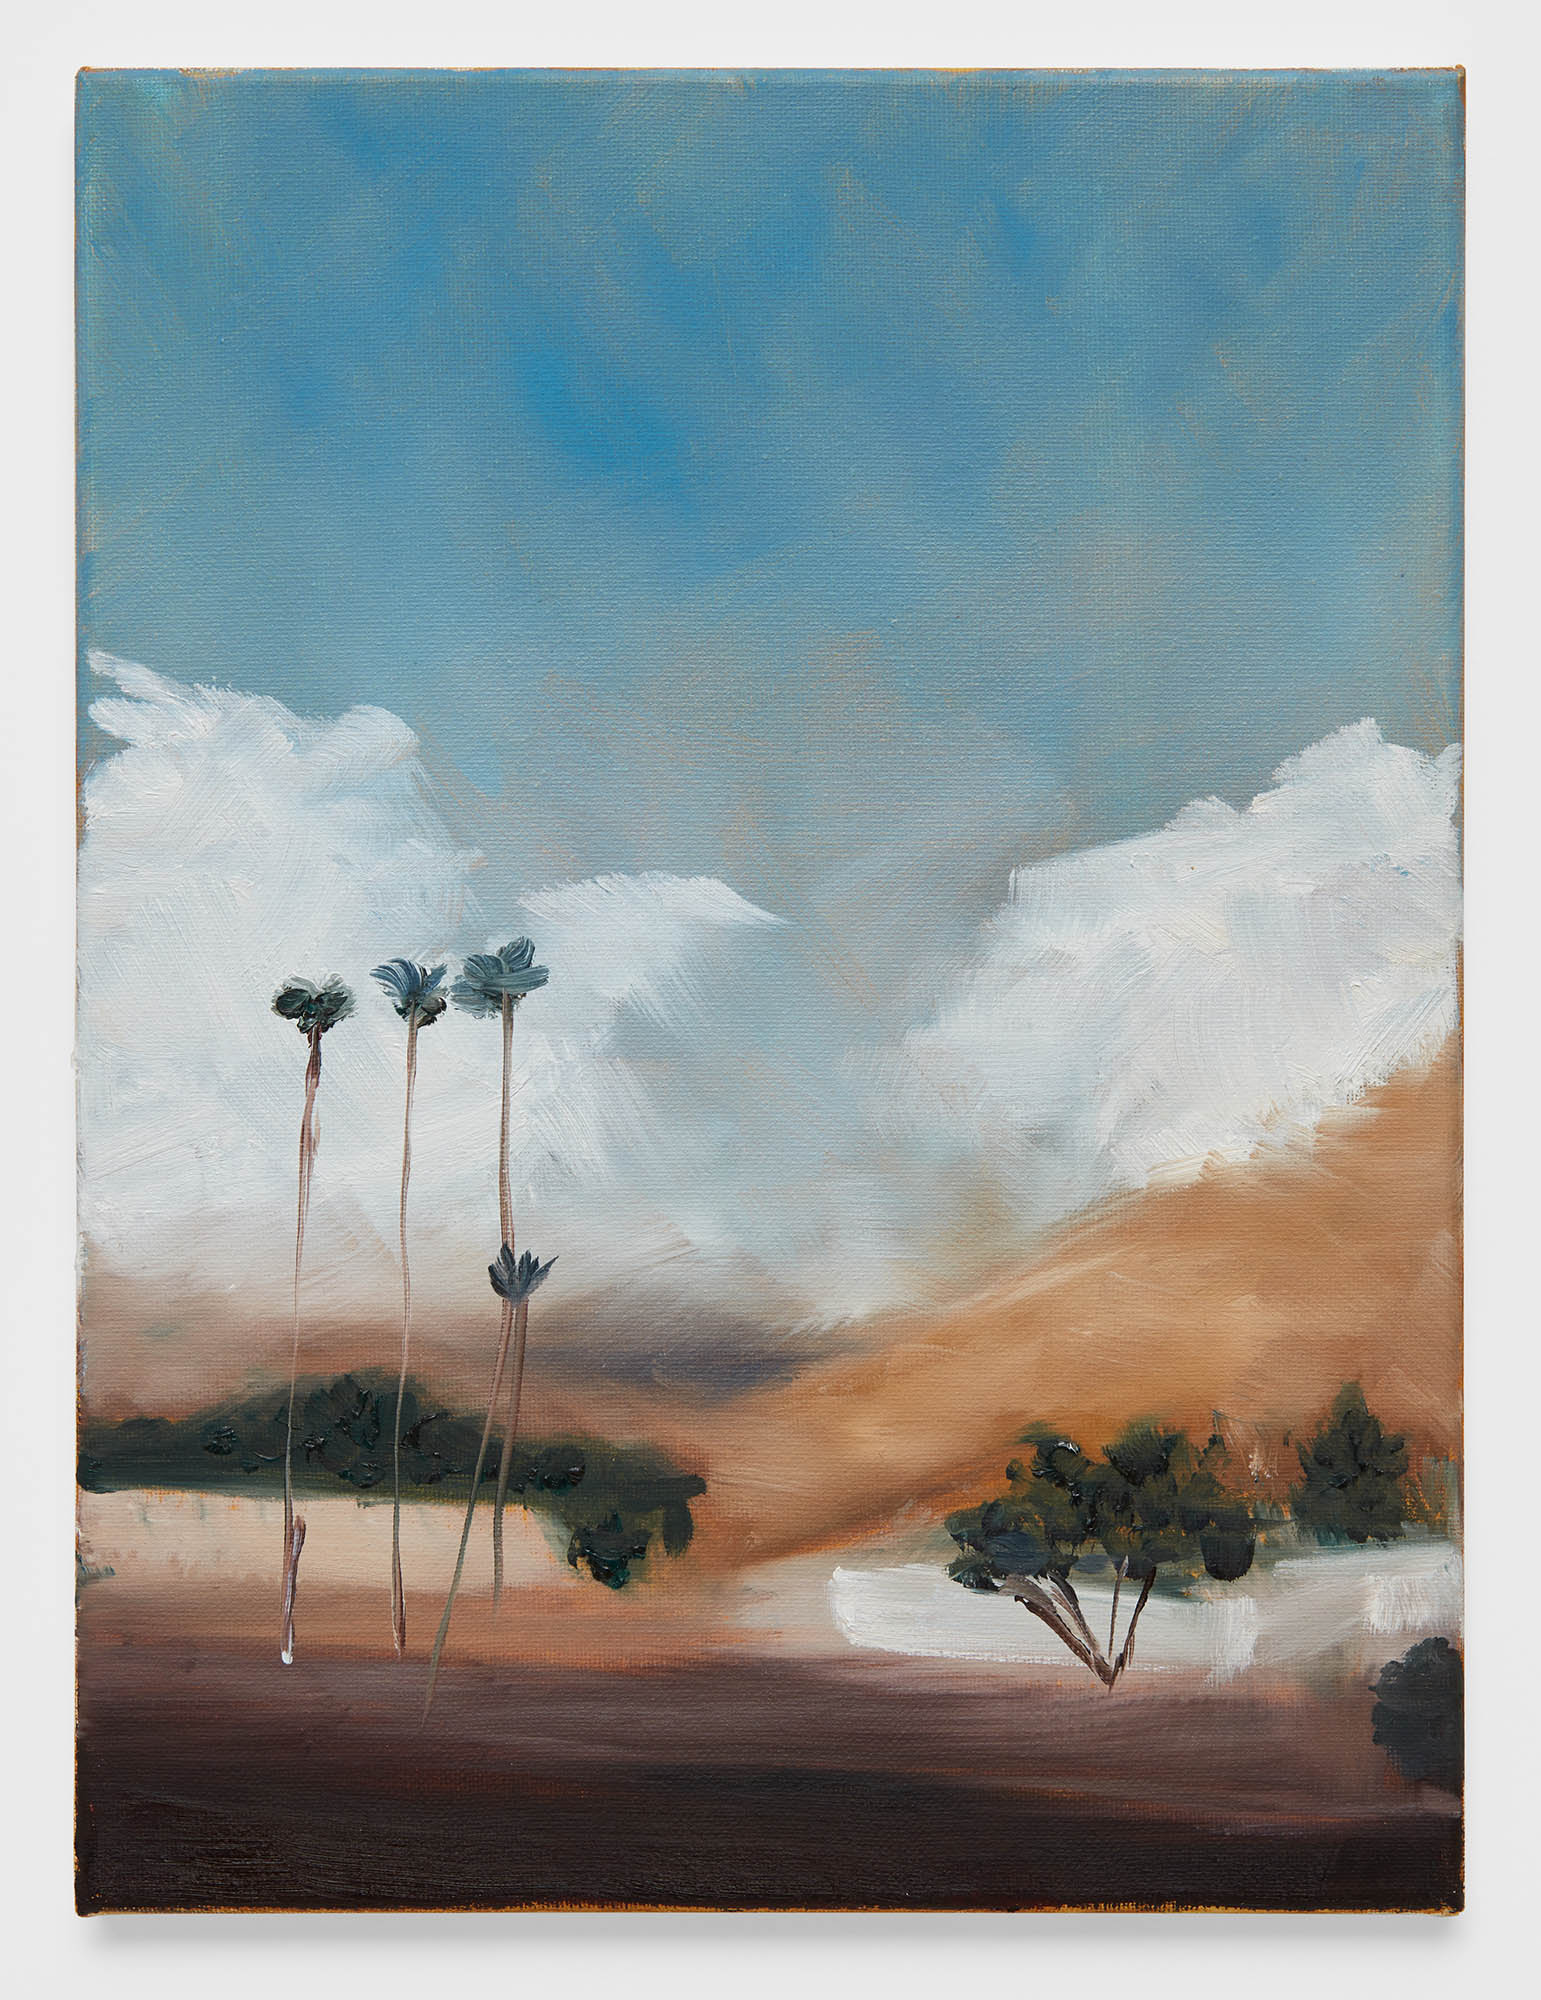 California Landscape (2018) oil on canvas, 11 x 14 inches